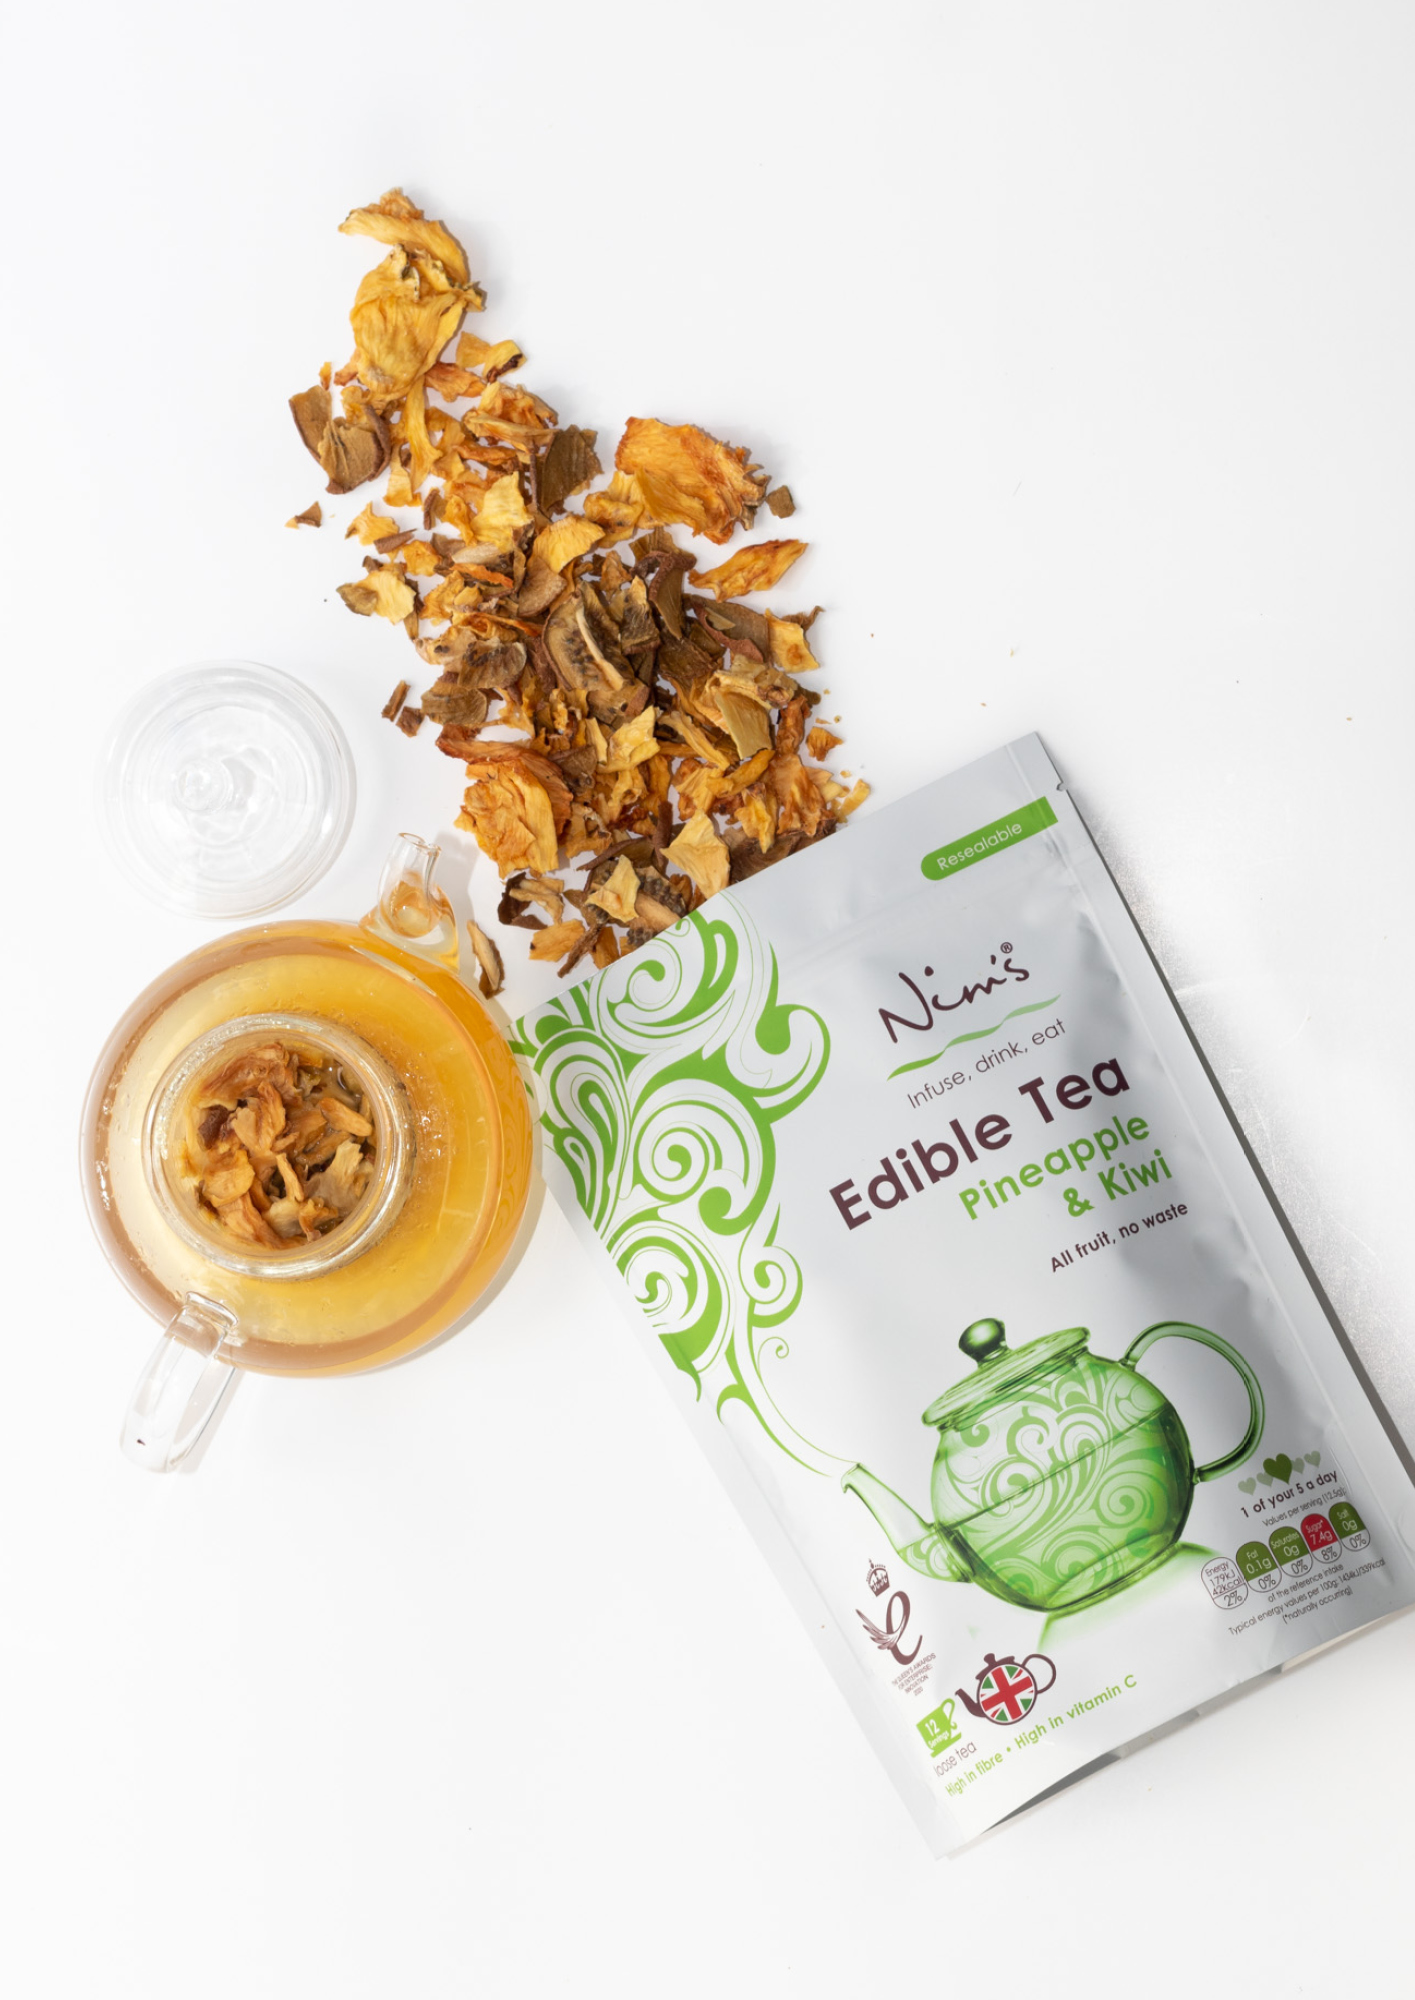 Edible Teas are one of the newest innovative project from Nim's Fruit Crisps